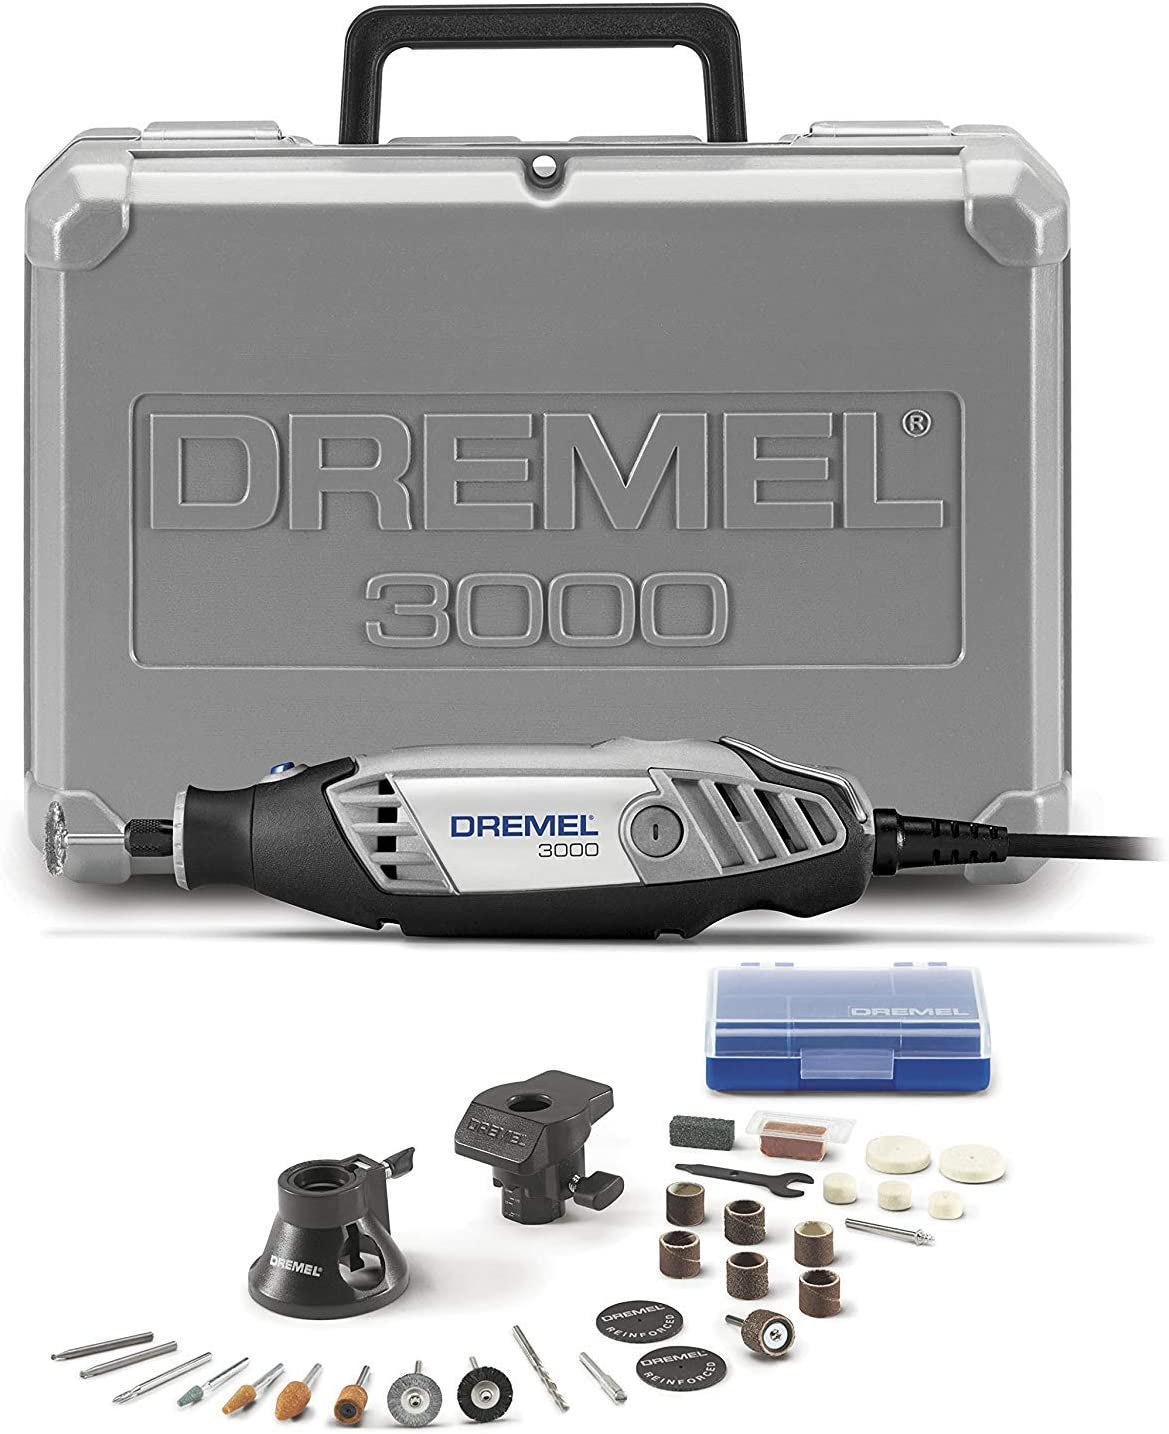 Dremel 3000-2/28 Variable Speed Rotary Tool Kit- 1 Attachments & 28 Accessories- Grinder, Sander, Polisher, Router, and Engraver- Perfect for Routing, Metal Cutting, Wood Carving, and Polishing - Power Rotary Tools -